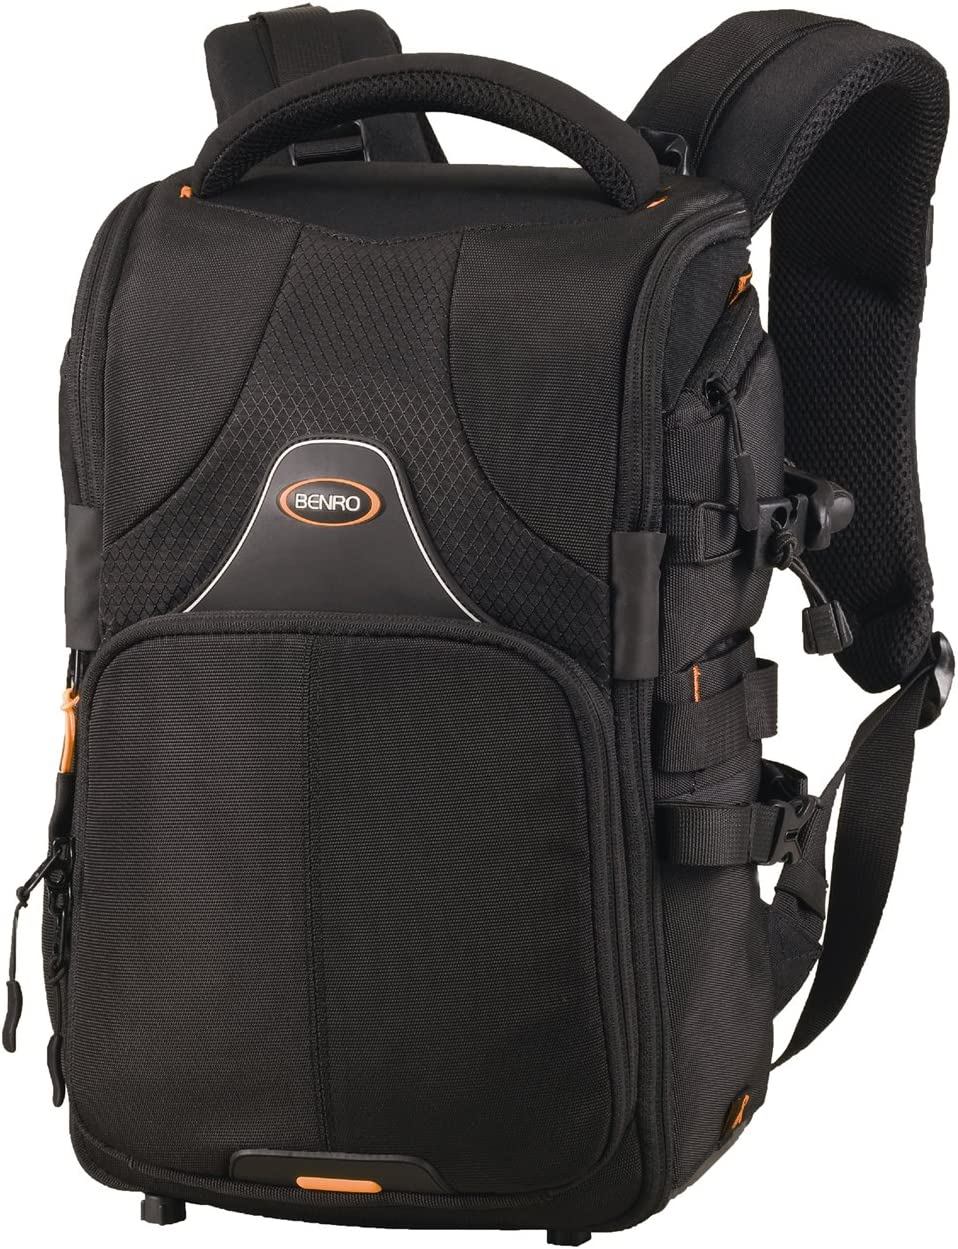 Benro Beyond B100 Camera Rucksack with Laptop Compartment and Weather Protection Black